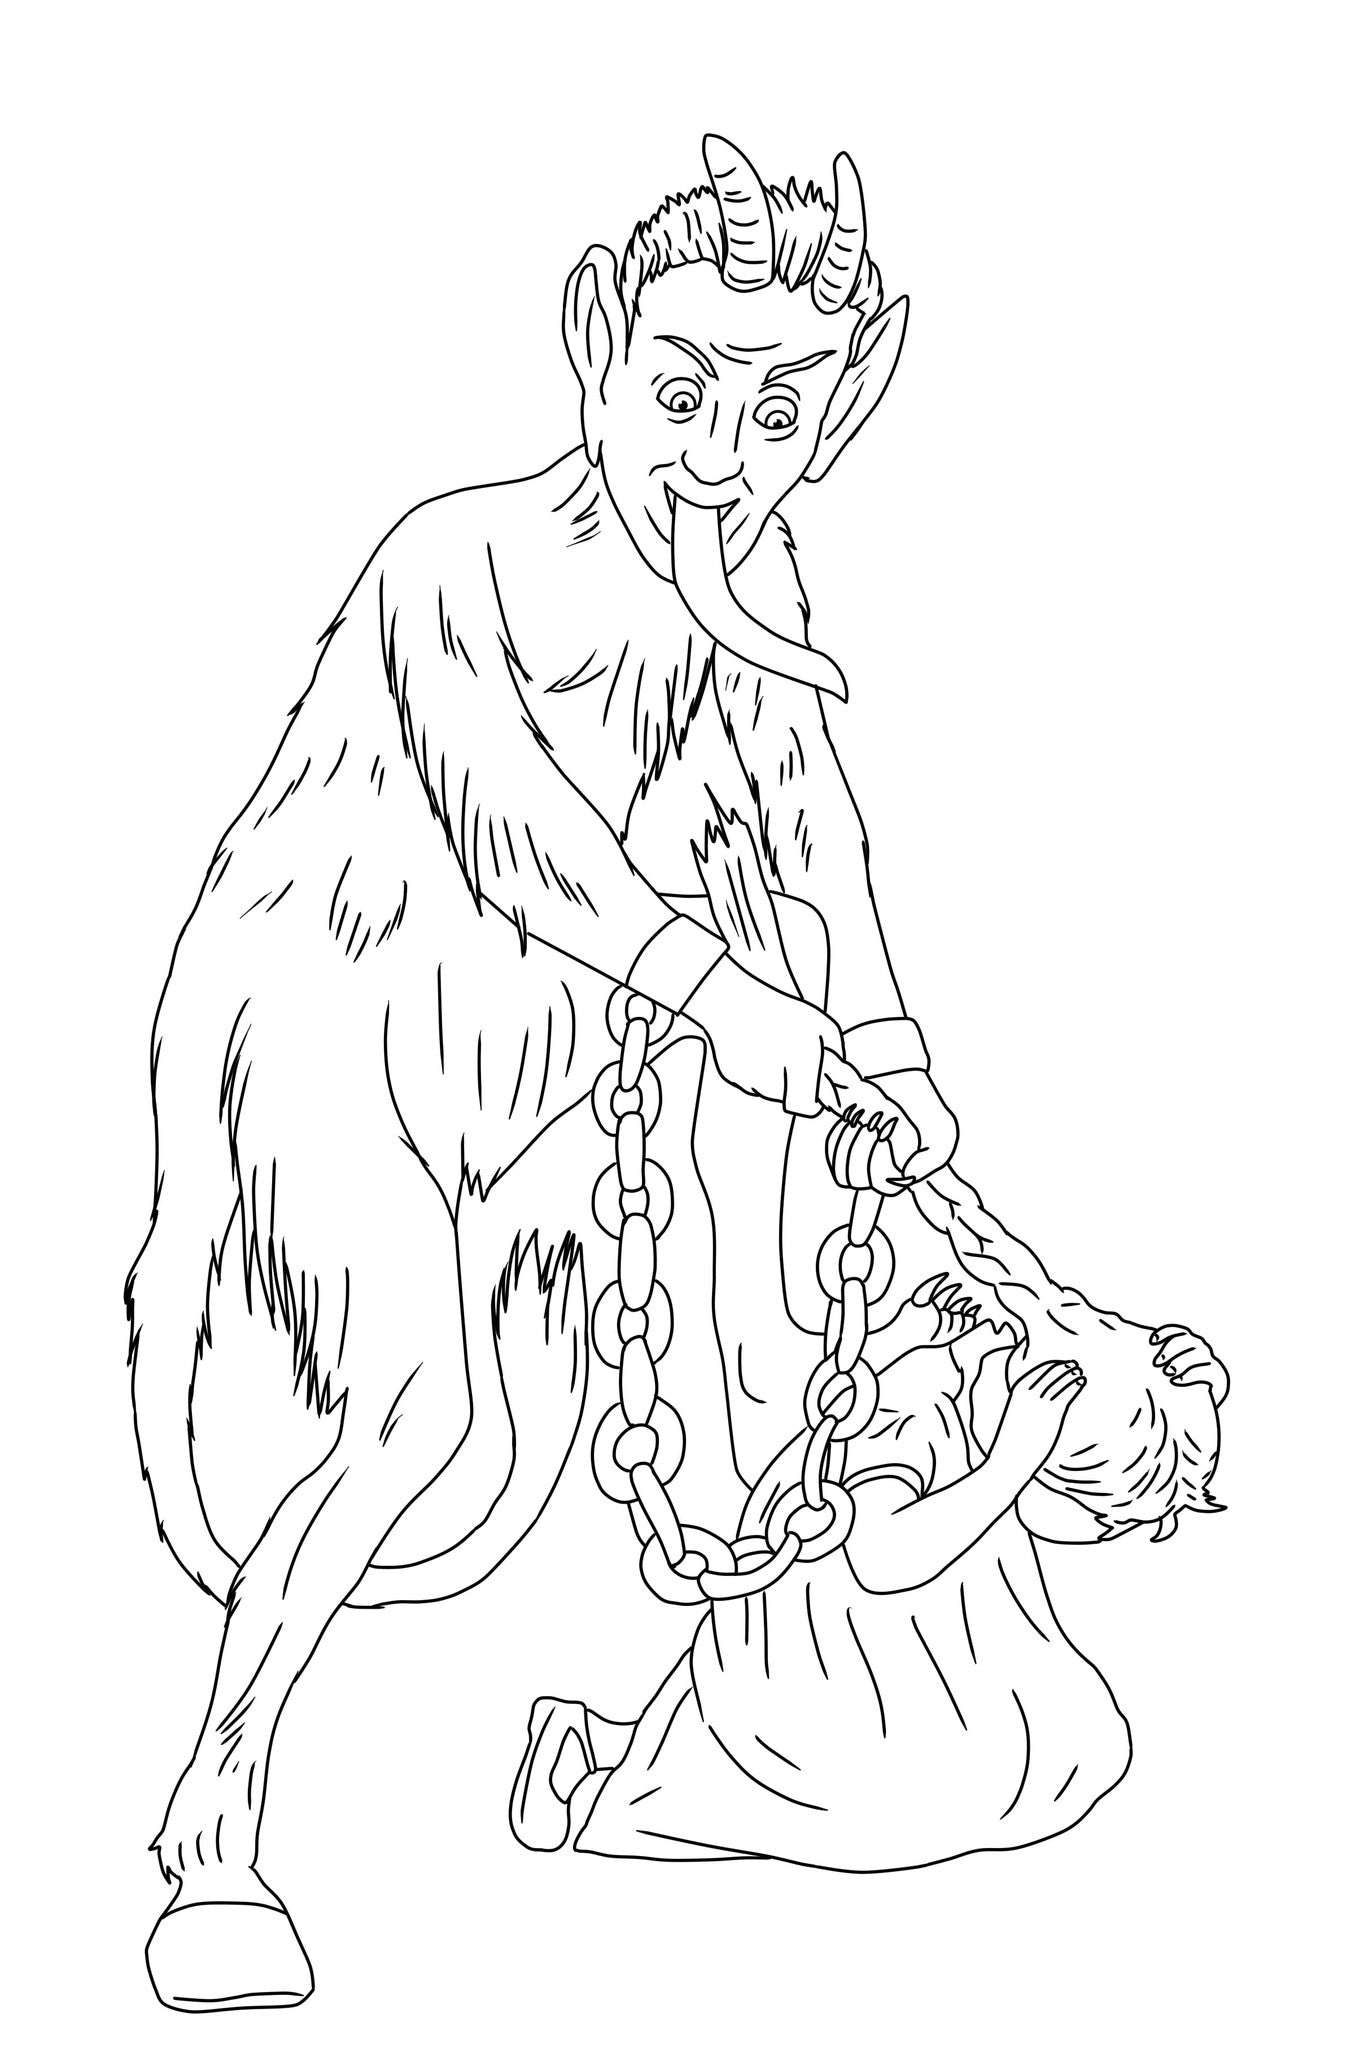 Krampus Coloring Book Vol 2 | Horrid Coloring Books